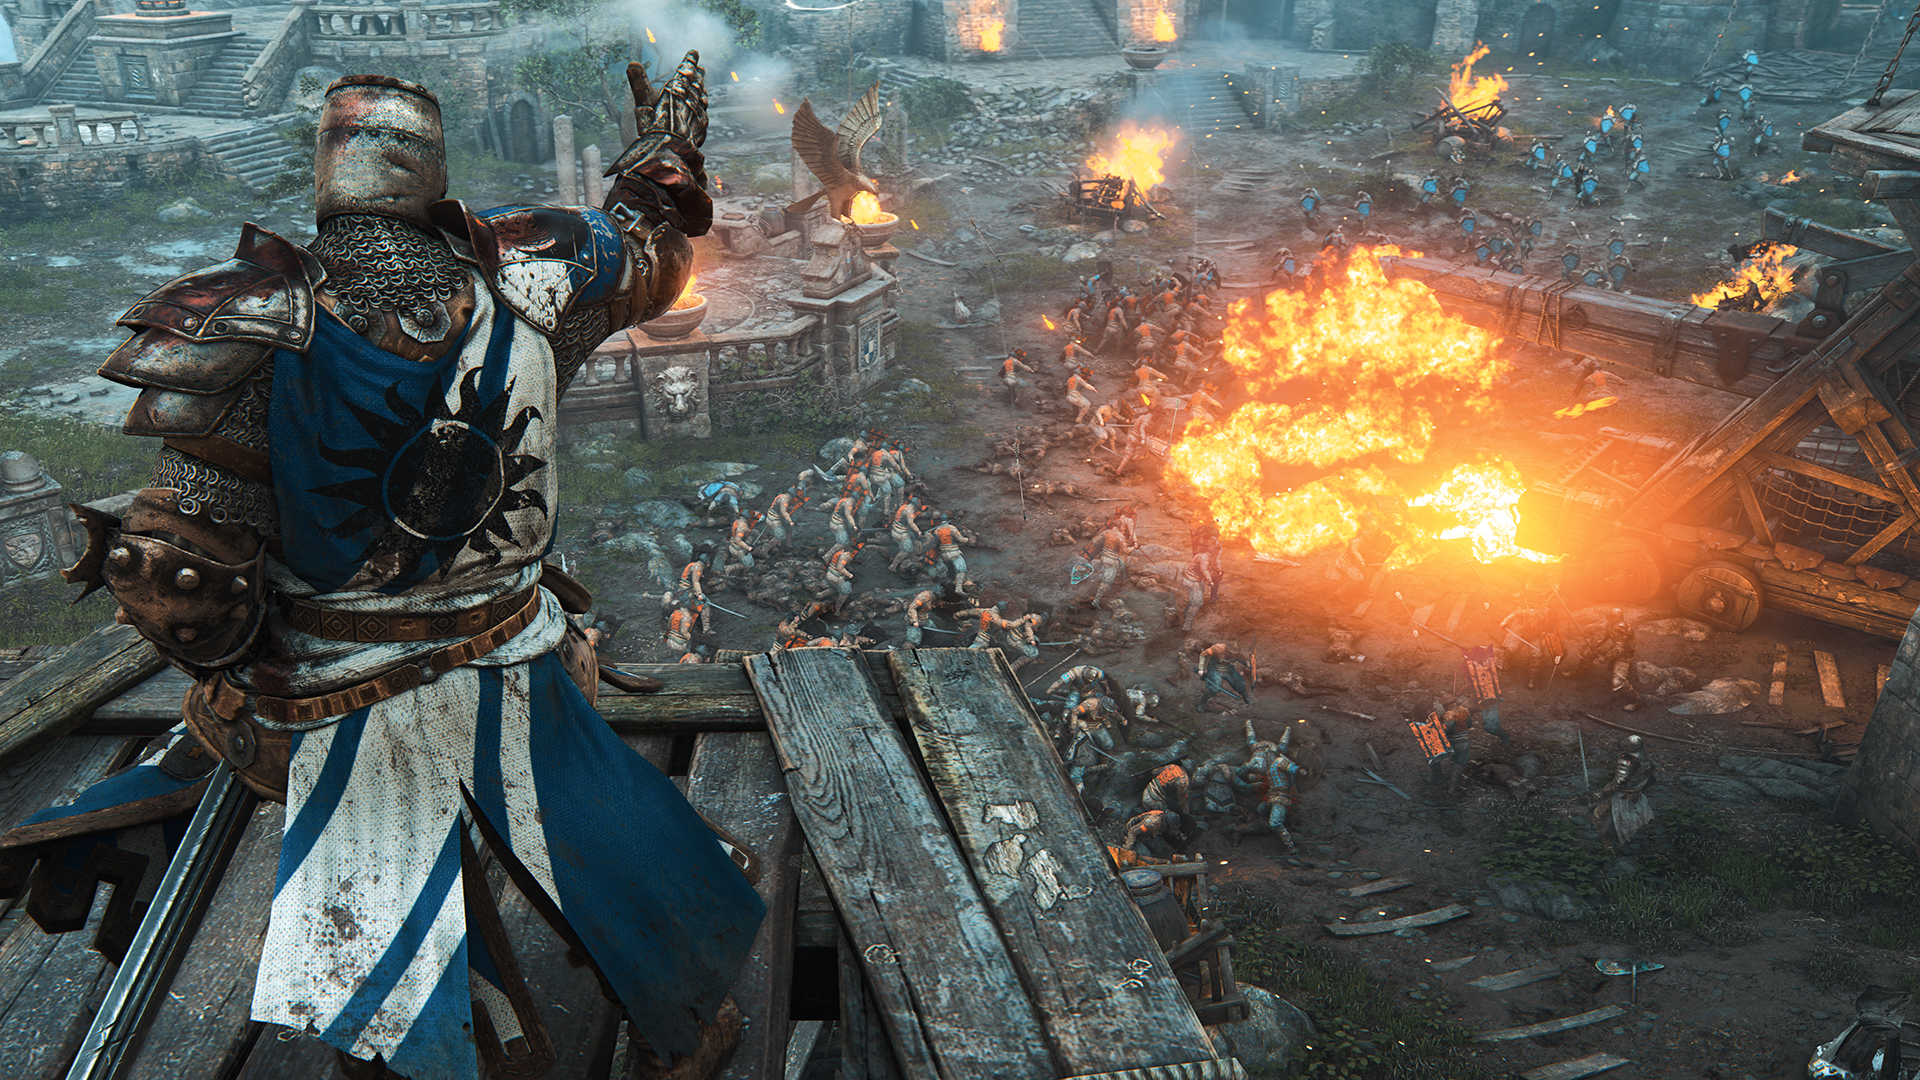 Ubisoft's latest action fighting game, For Honor